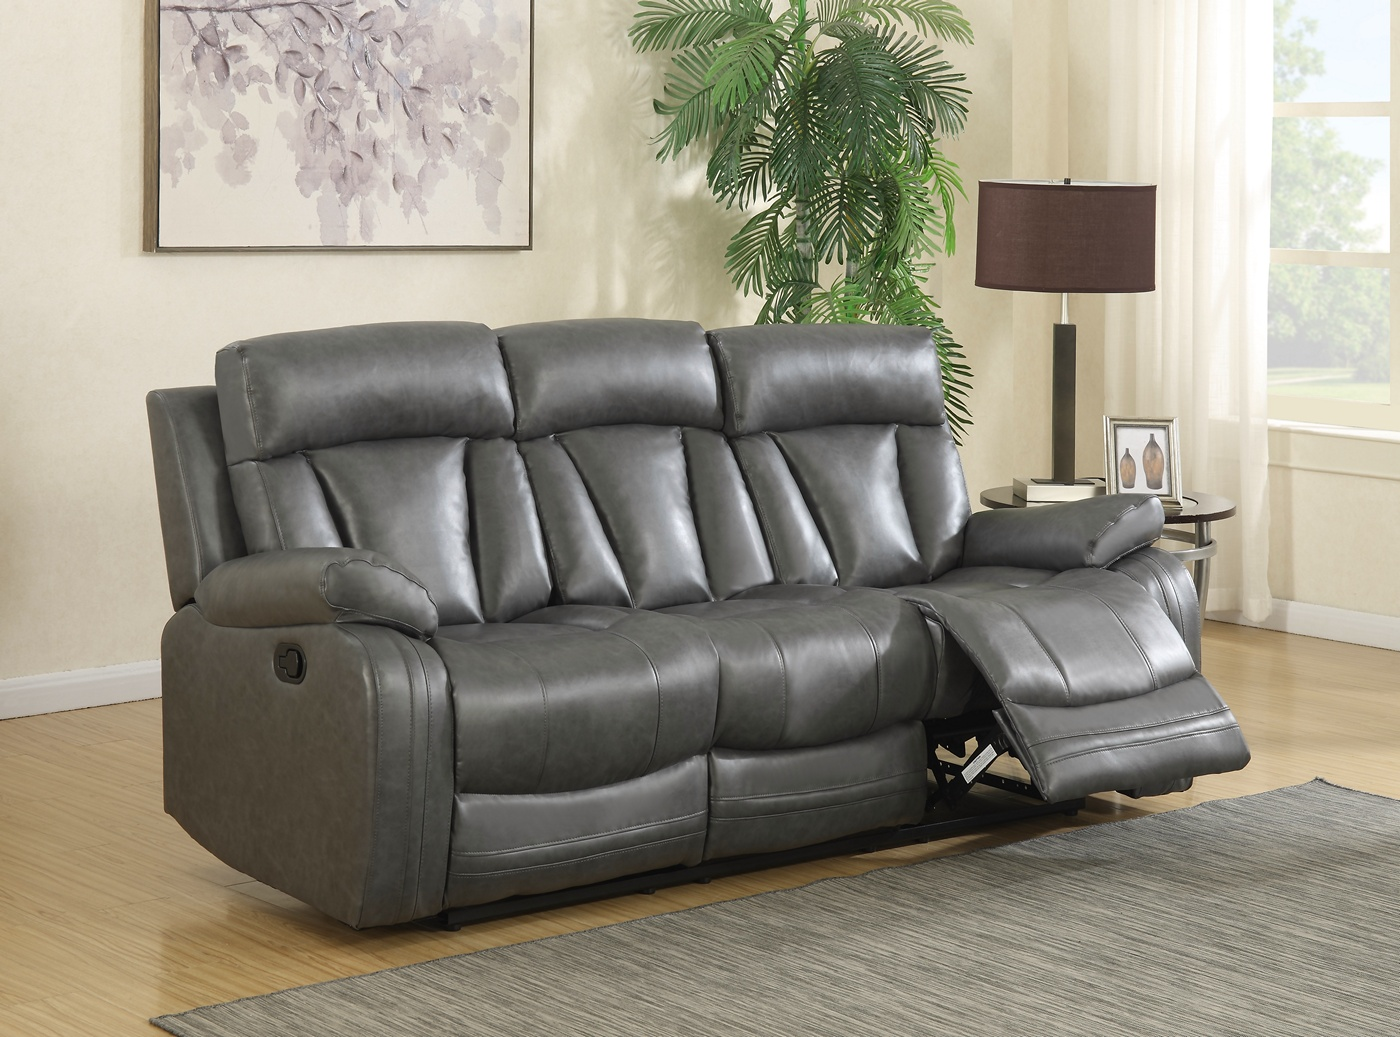 modern bonded leather sectional sofa with recliners sofaer co restaurant yangon kyson grey reclining and loveseat